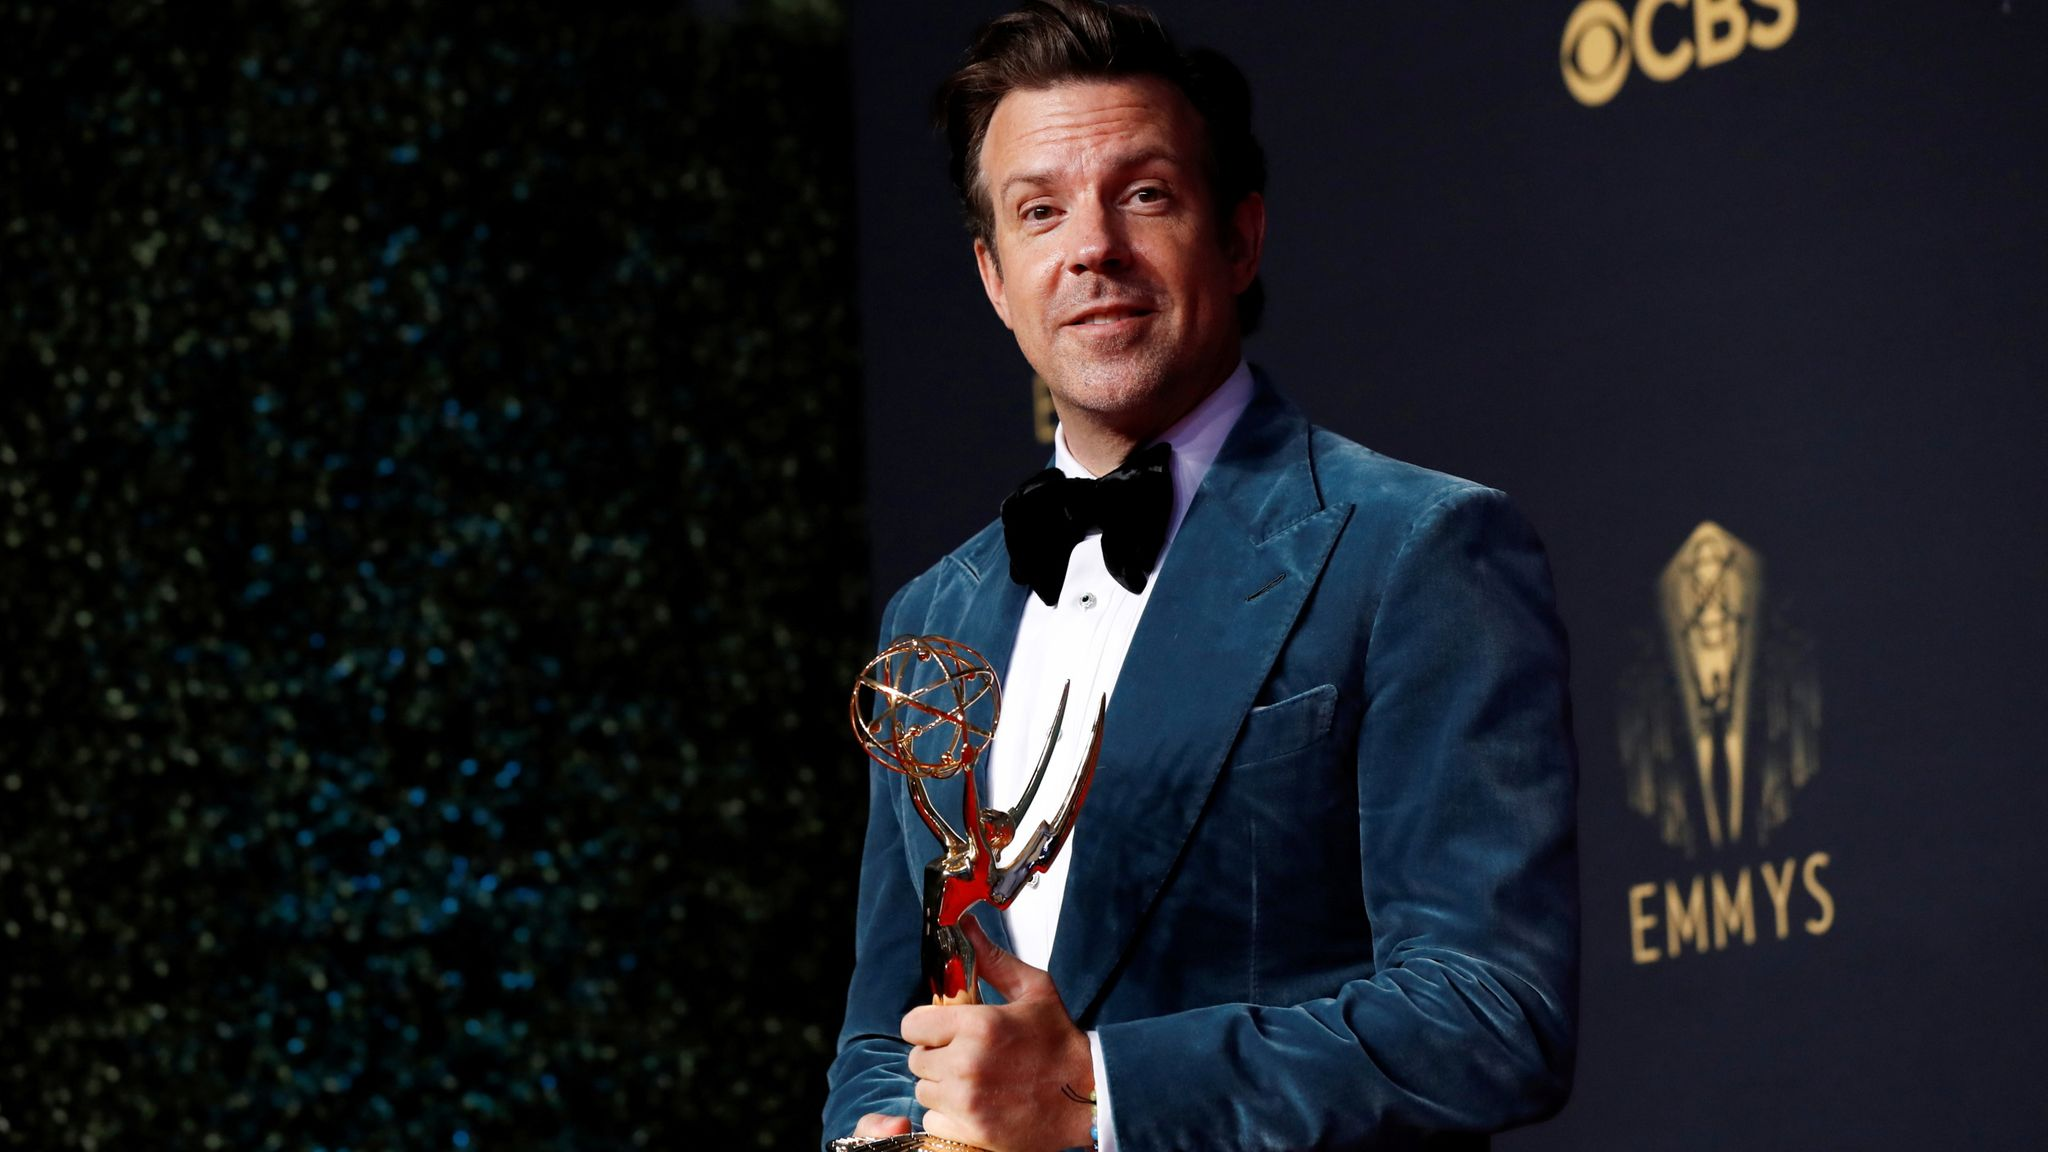 Jason Sudeikis with the Emmy award for outstanding lead actor in a comedy series, for Ted Lasso